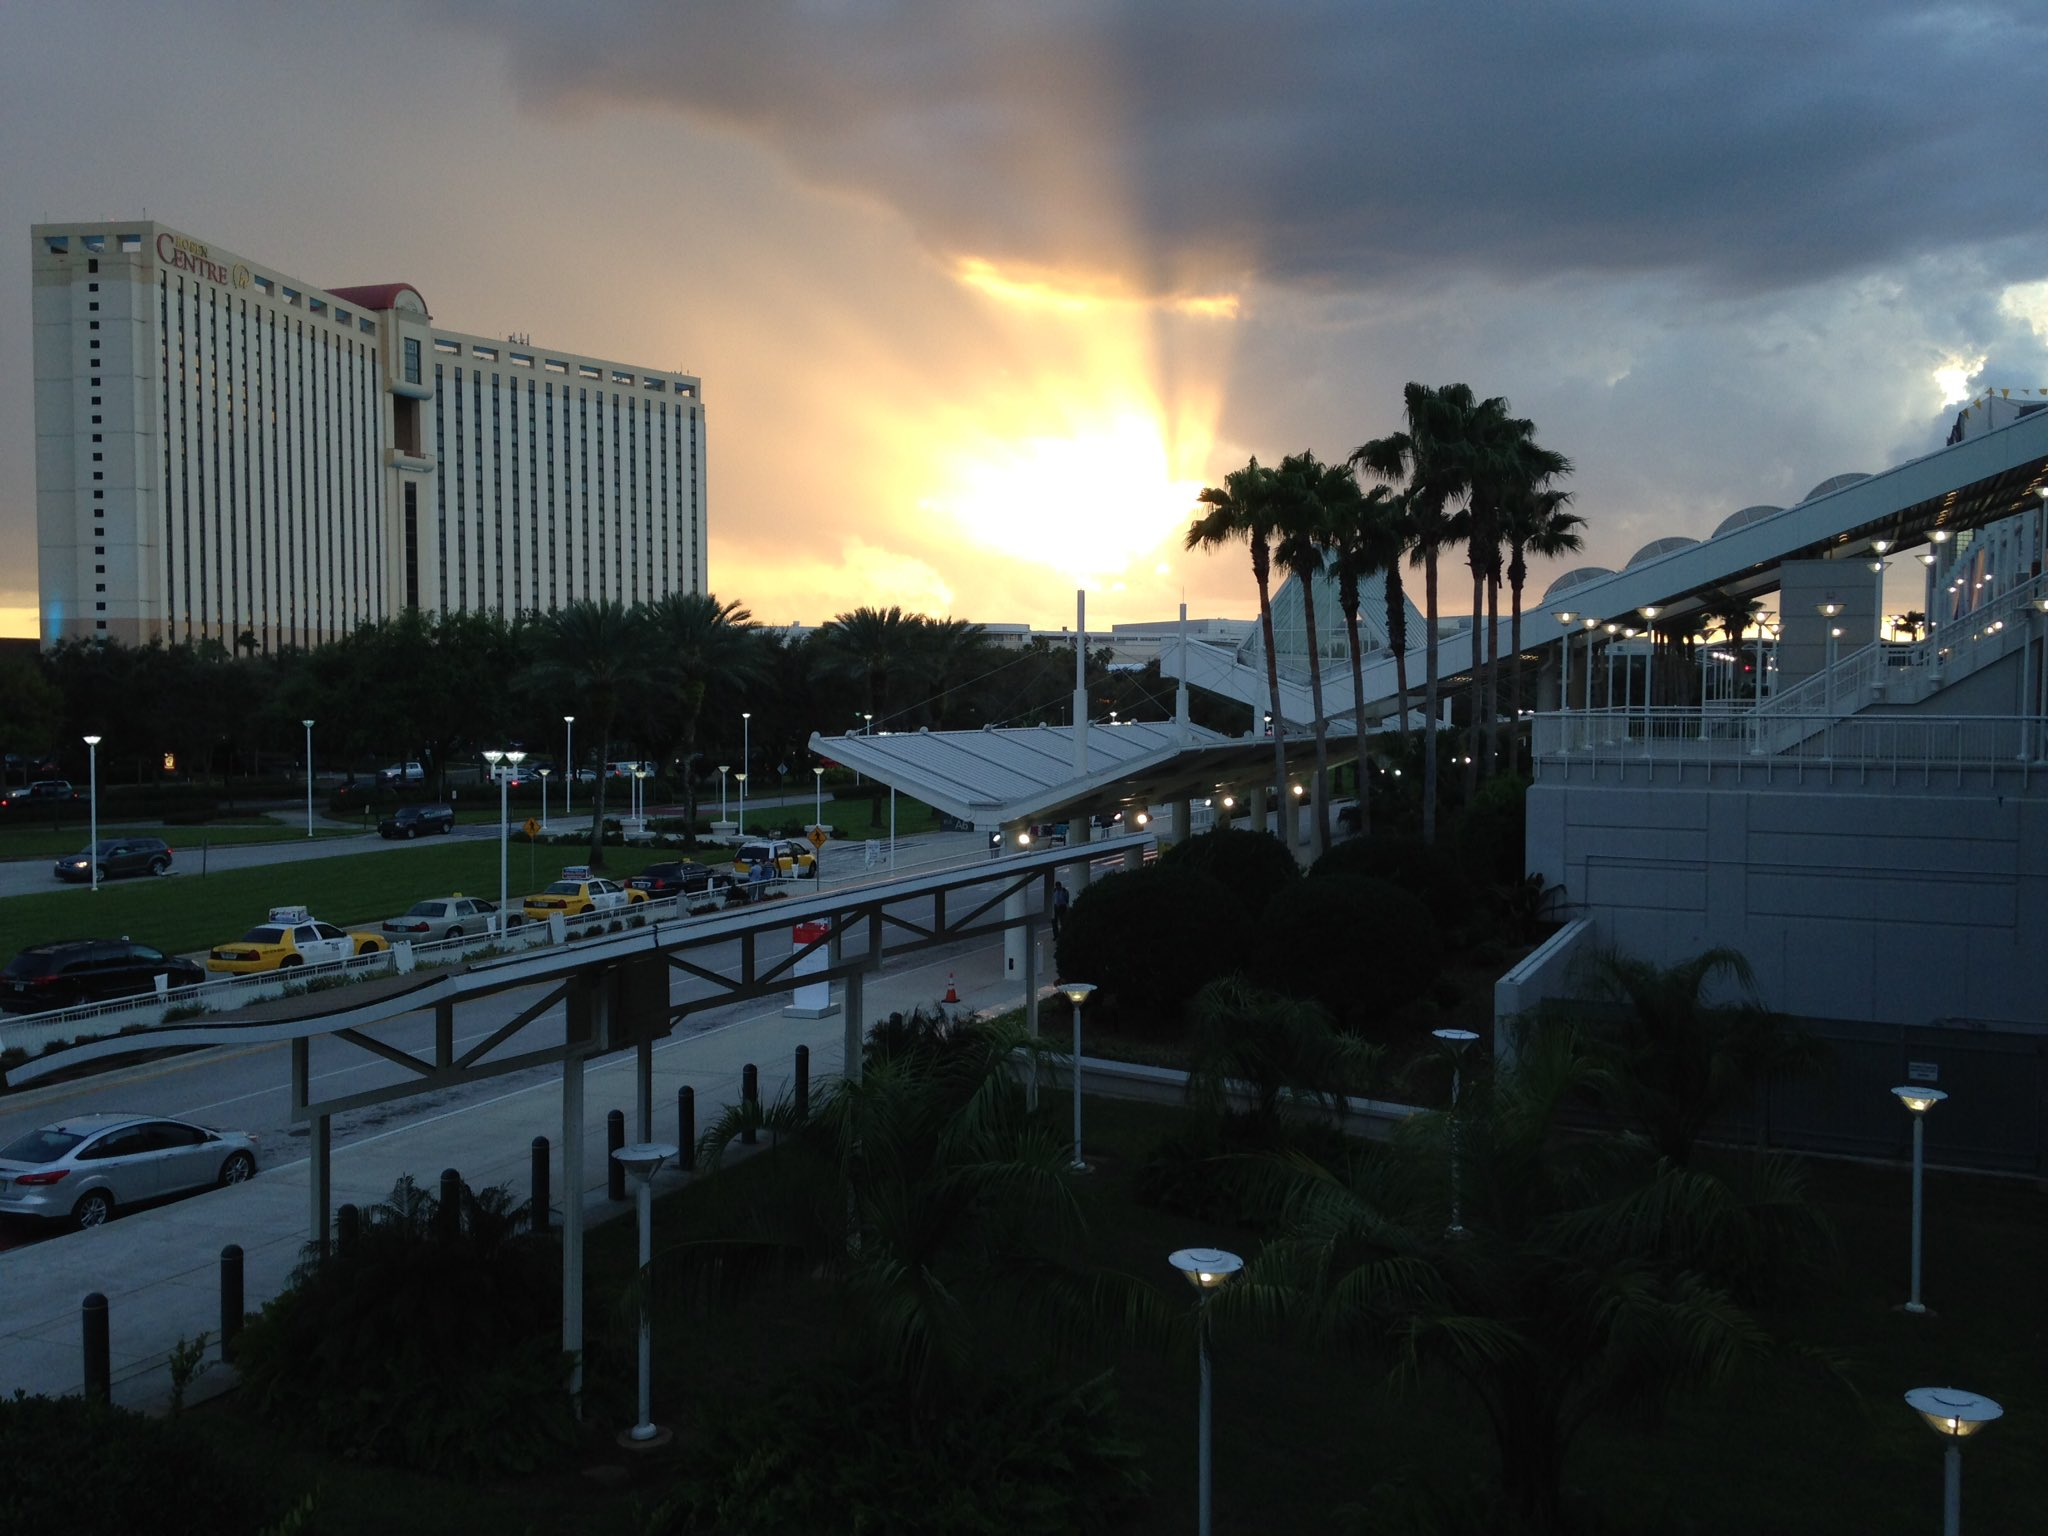 Ended #TheNAFEMShow Booth setup Day 1 to a gorgeous sunset between @RosenHotels @OCCC https://t.co/9N1KDkvLko